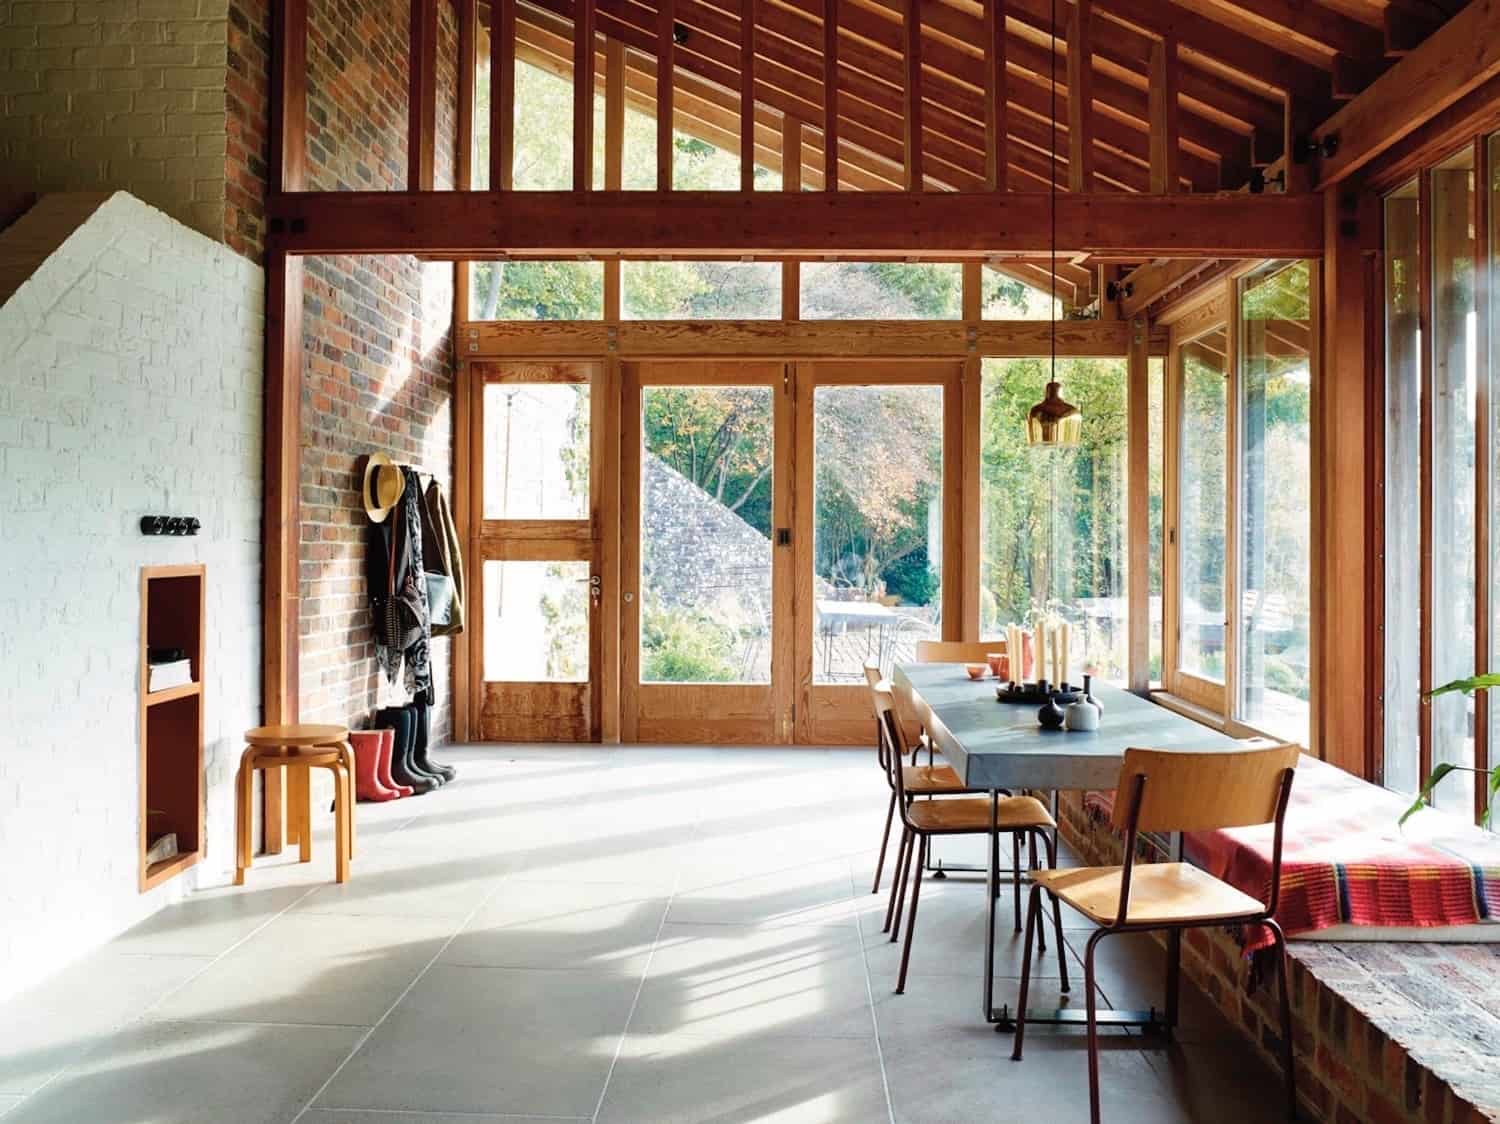 2-Tiered 60s House, Studio and Cottage Ruin Get Modern Upgrade